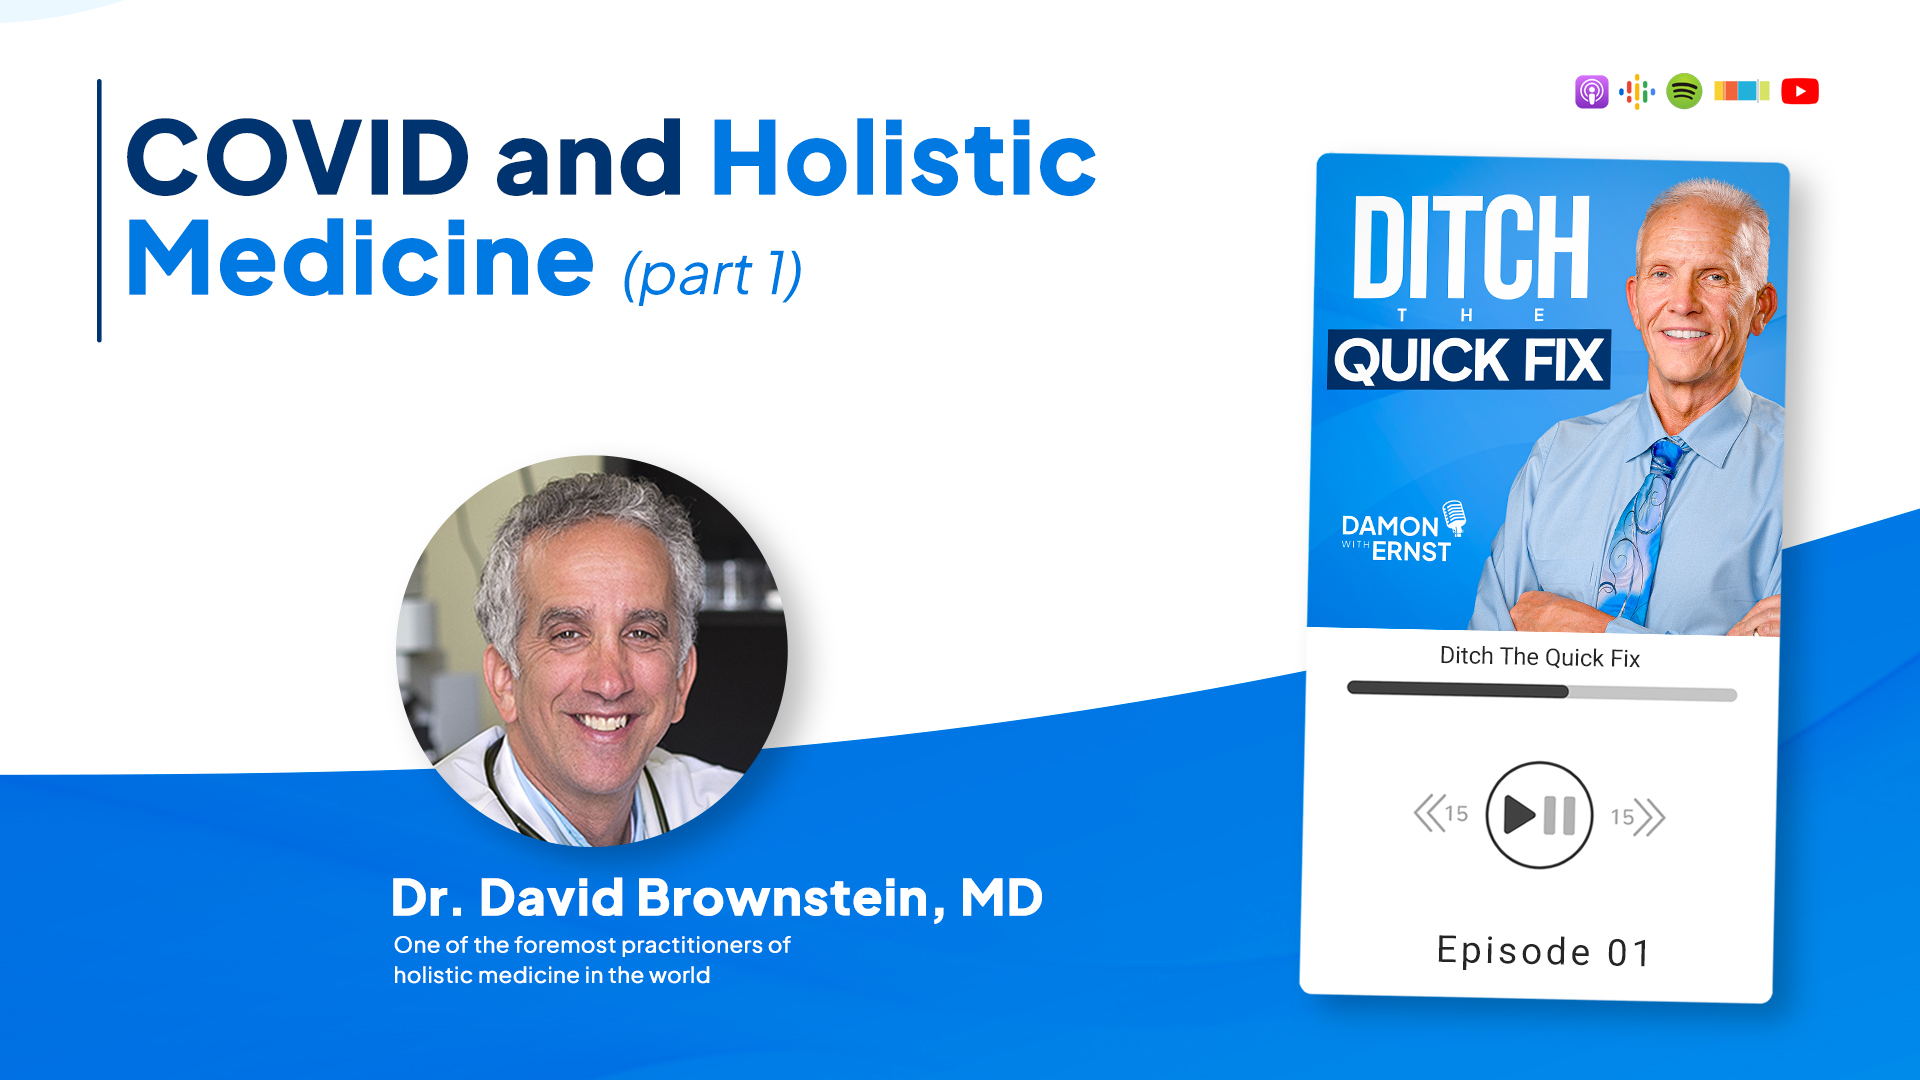 COVID and Holistic Medicine with Dr. David Brownstein